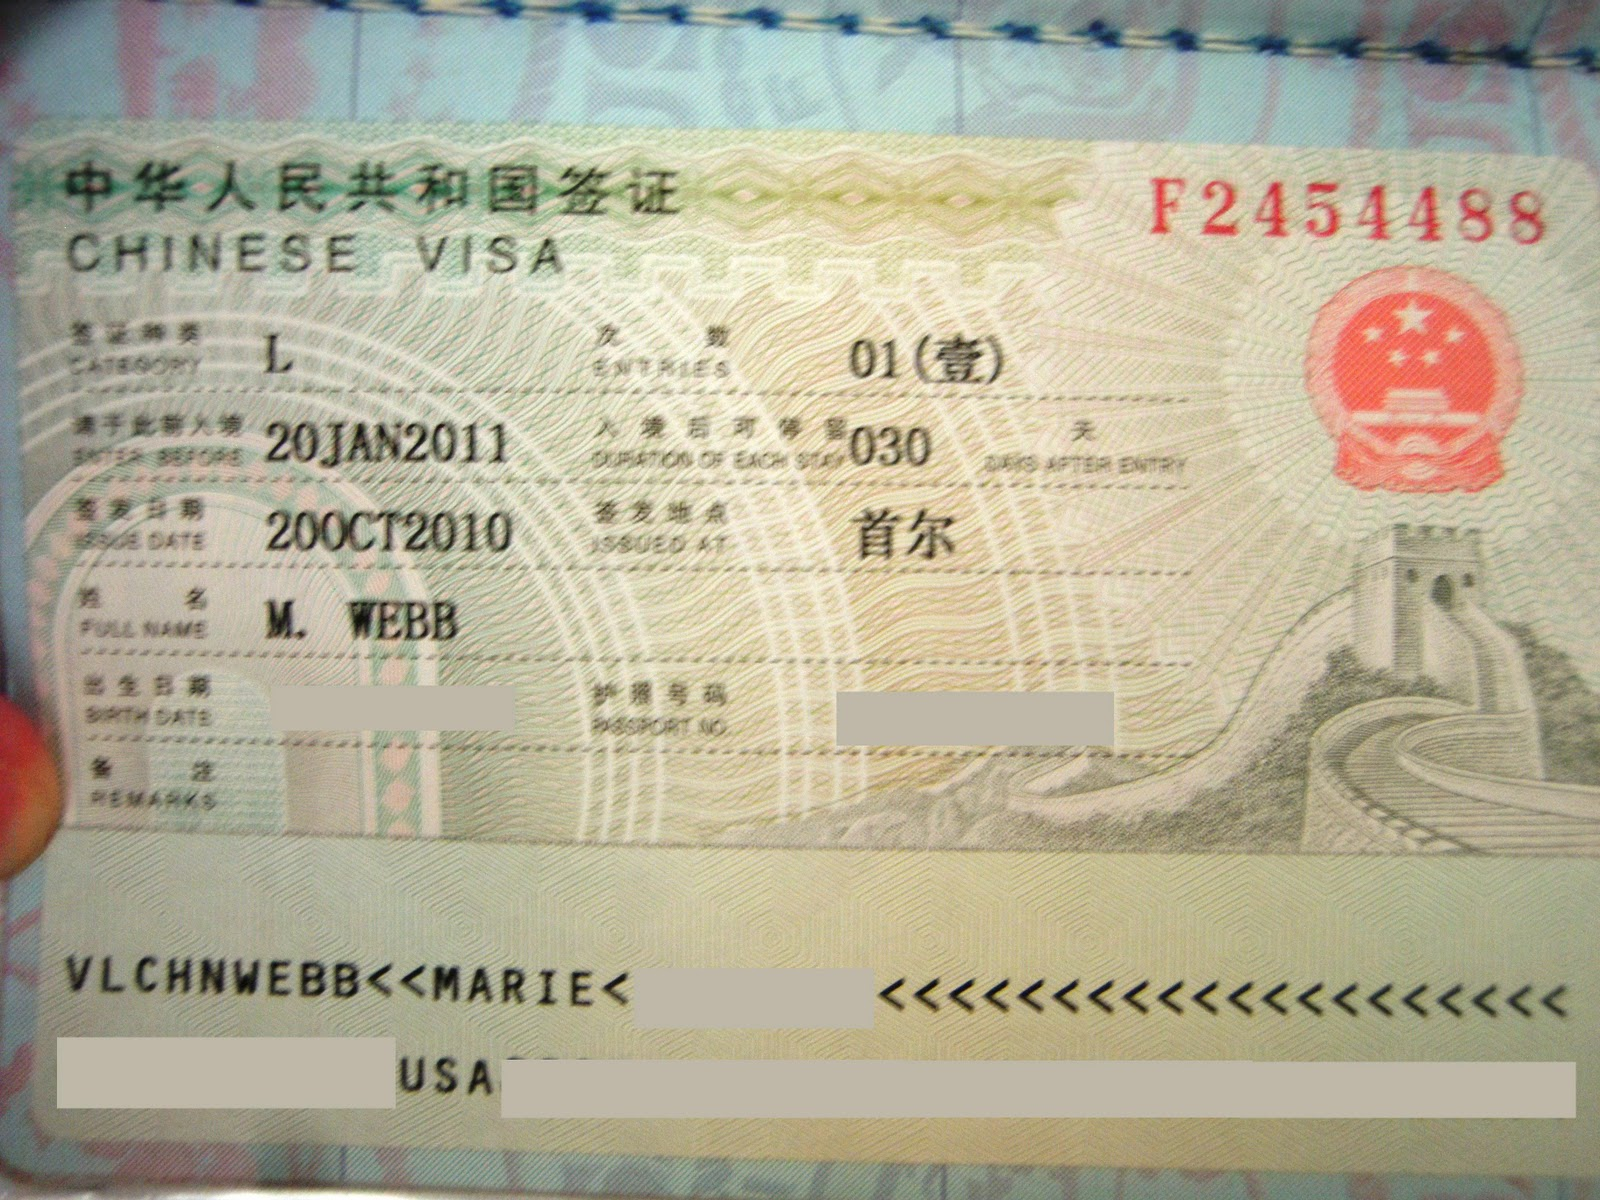 1betterofall how do i apply for a china visa application form